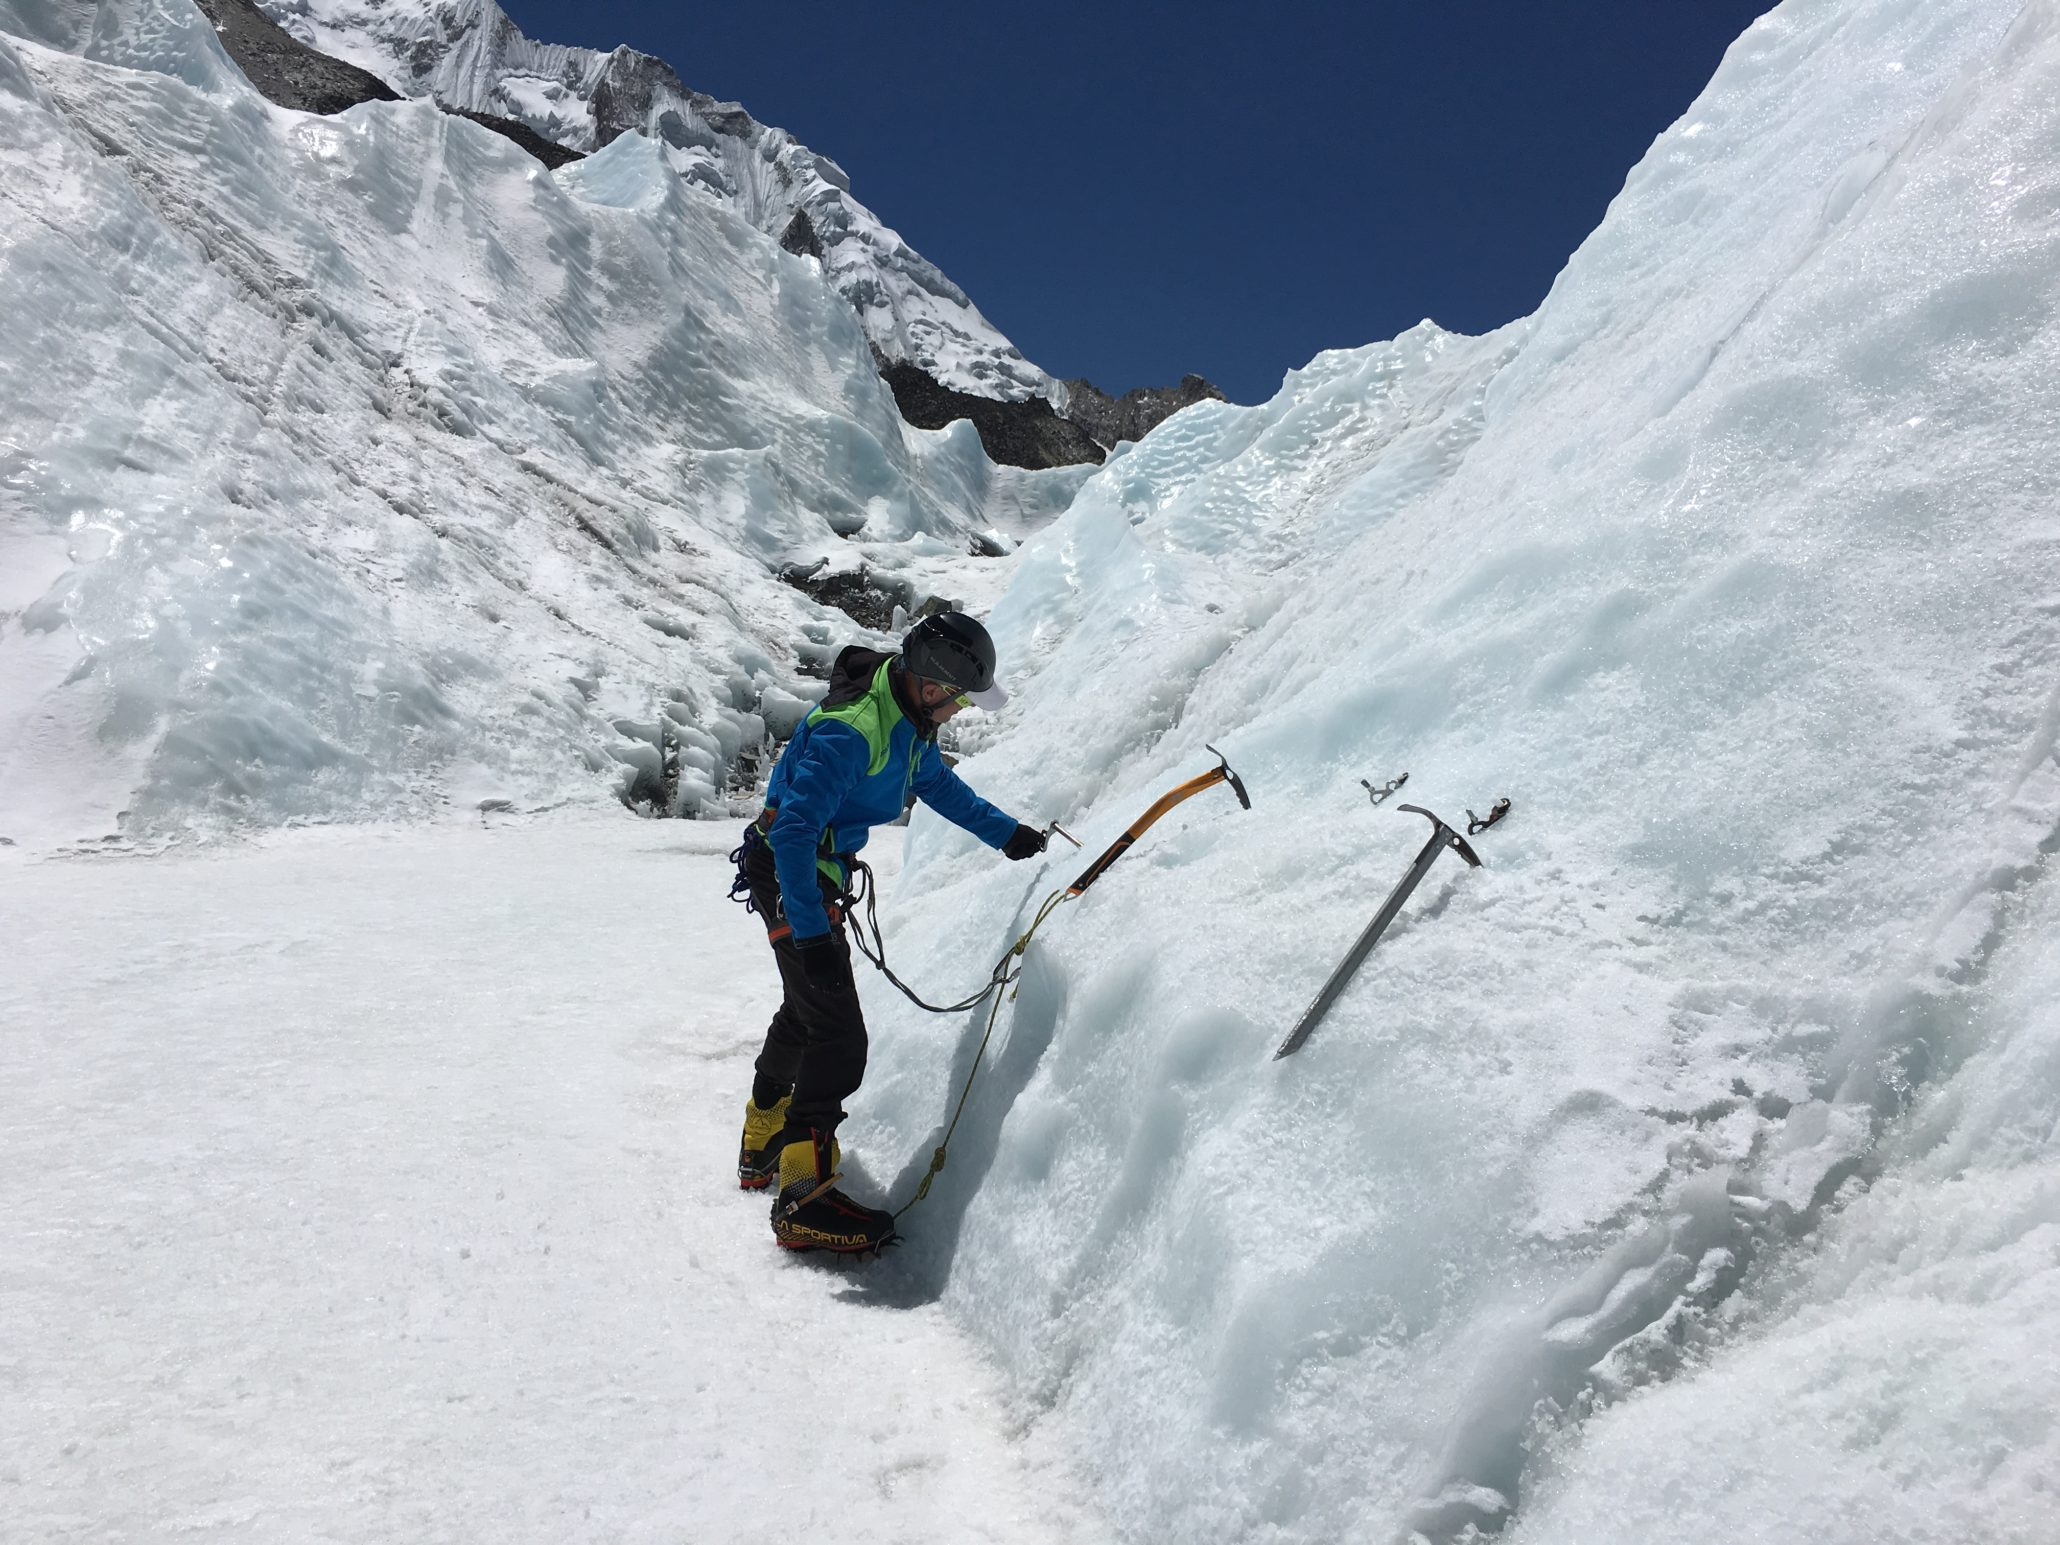 himalayan trekker ice climbing in mountain covered with snow